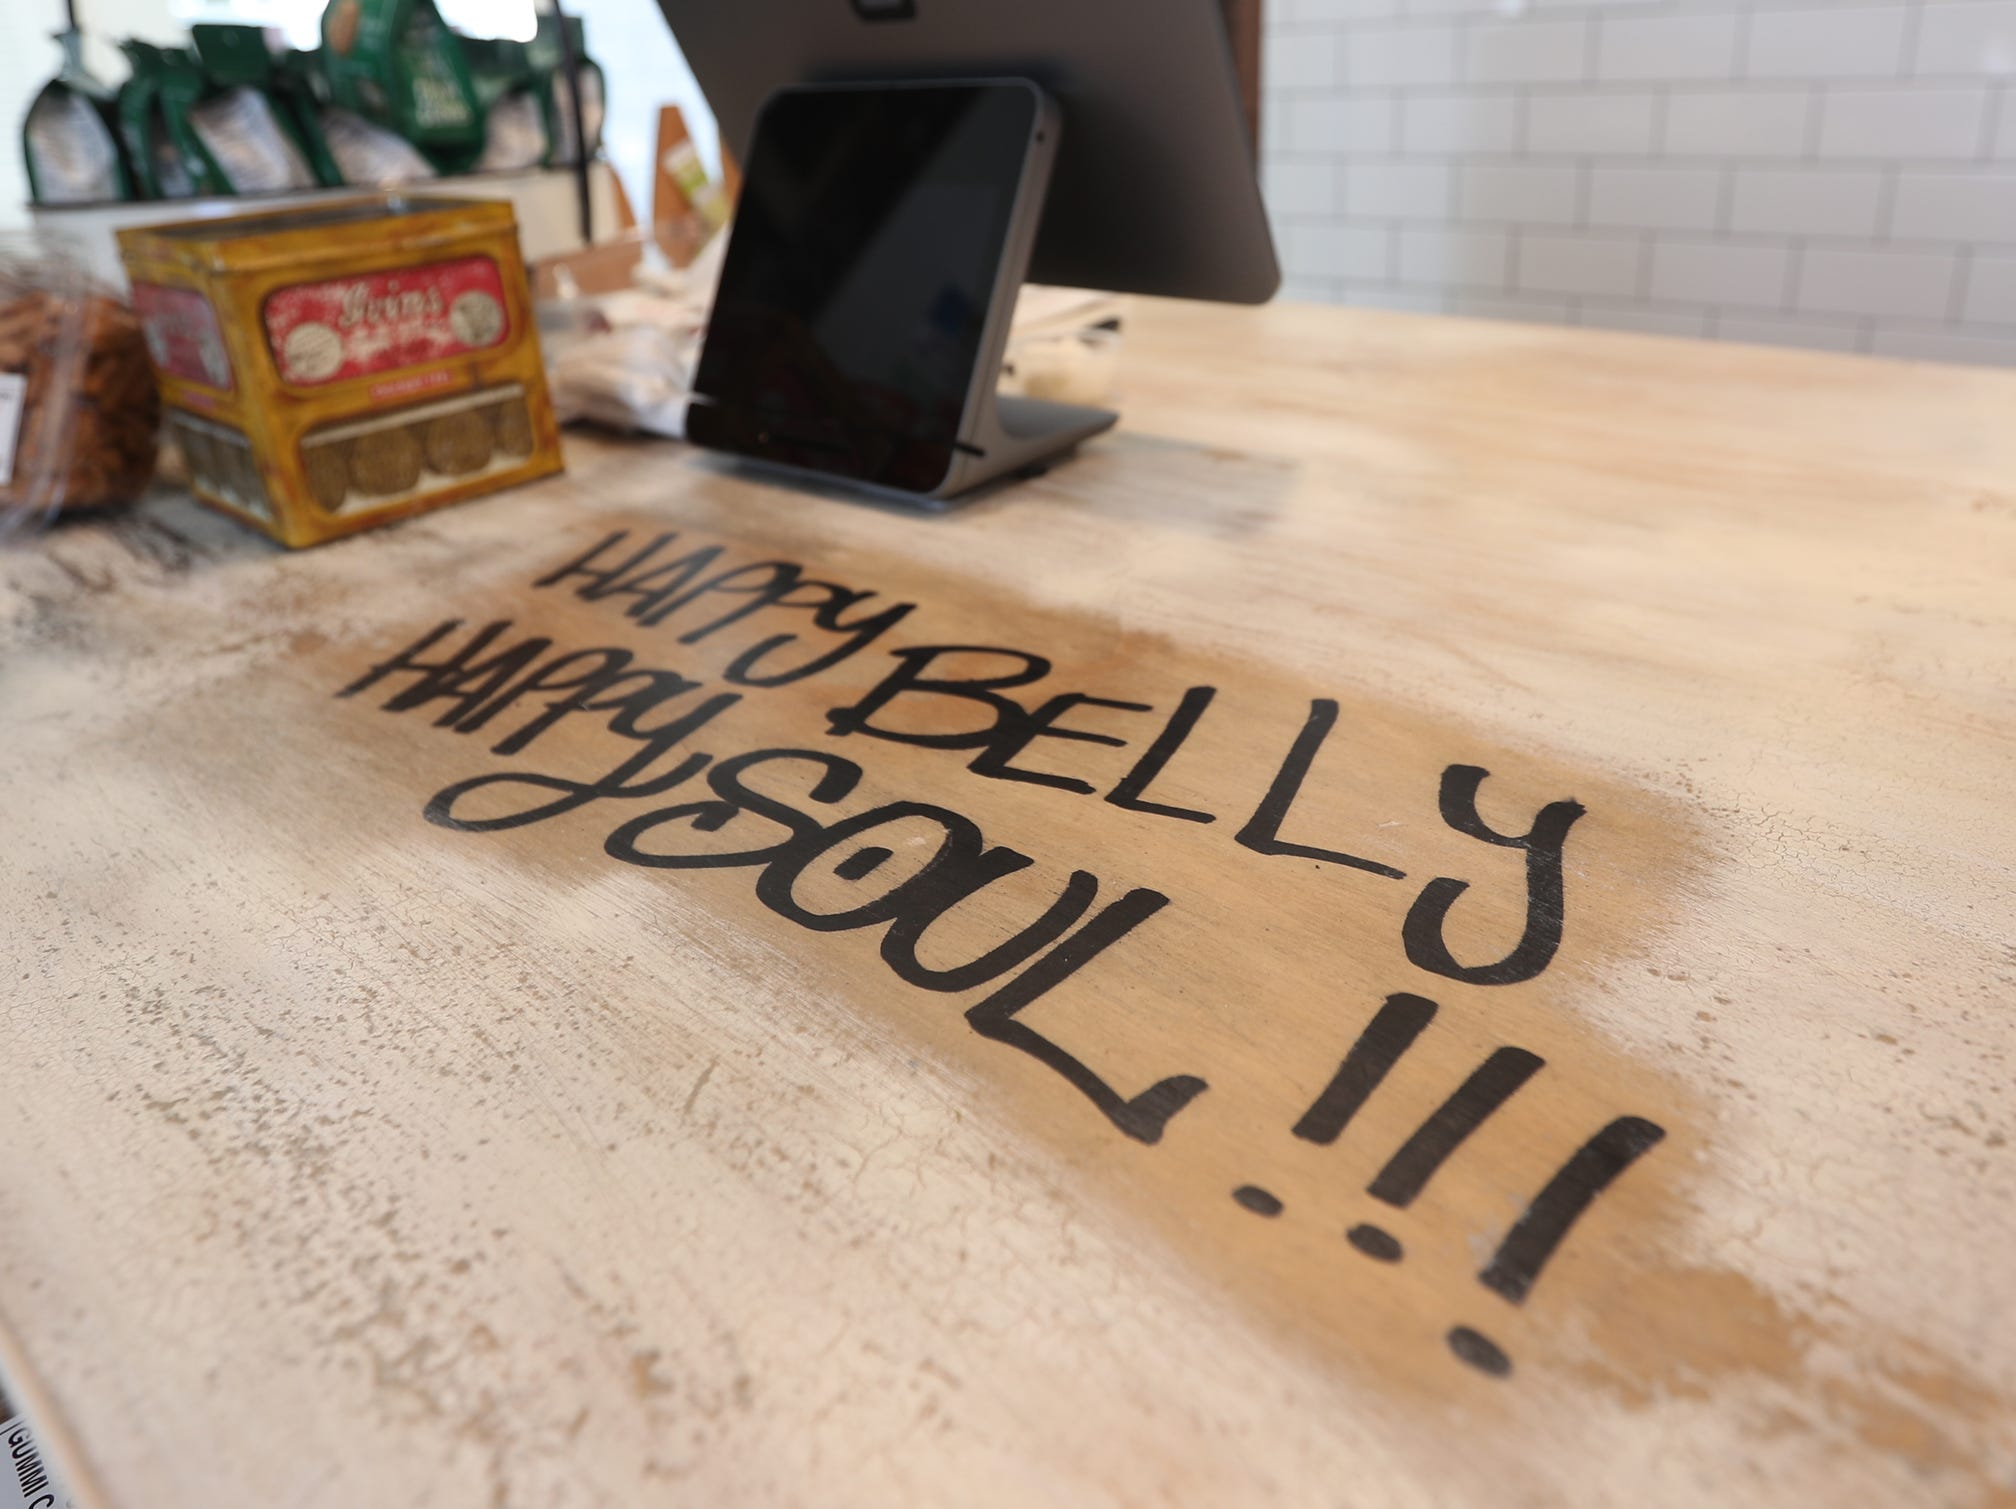 Happy Belly Kitchen slogan on the counter in Sloatsburg on Wednesday, February 13, 2019.